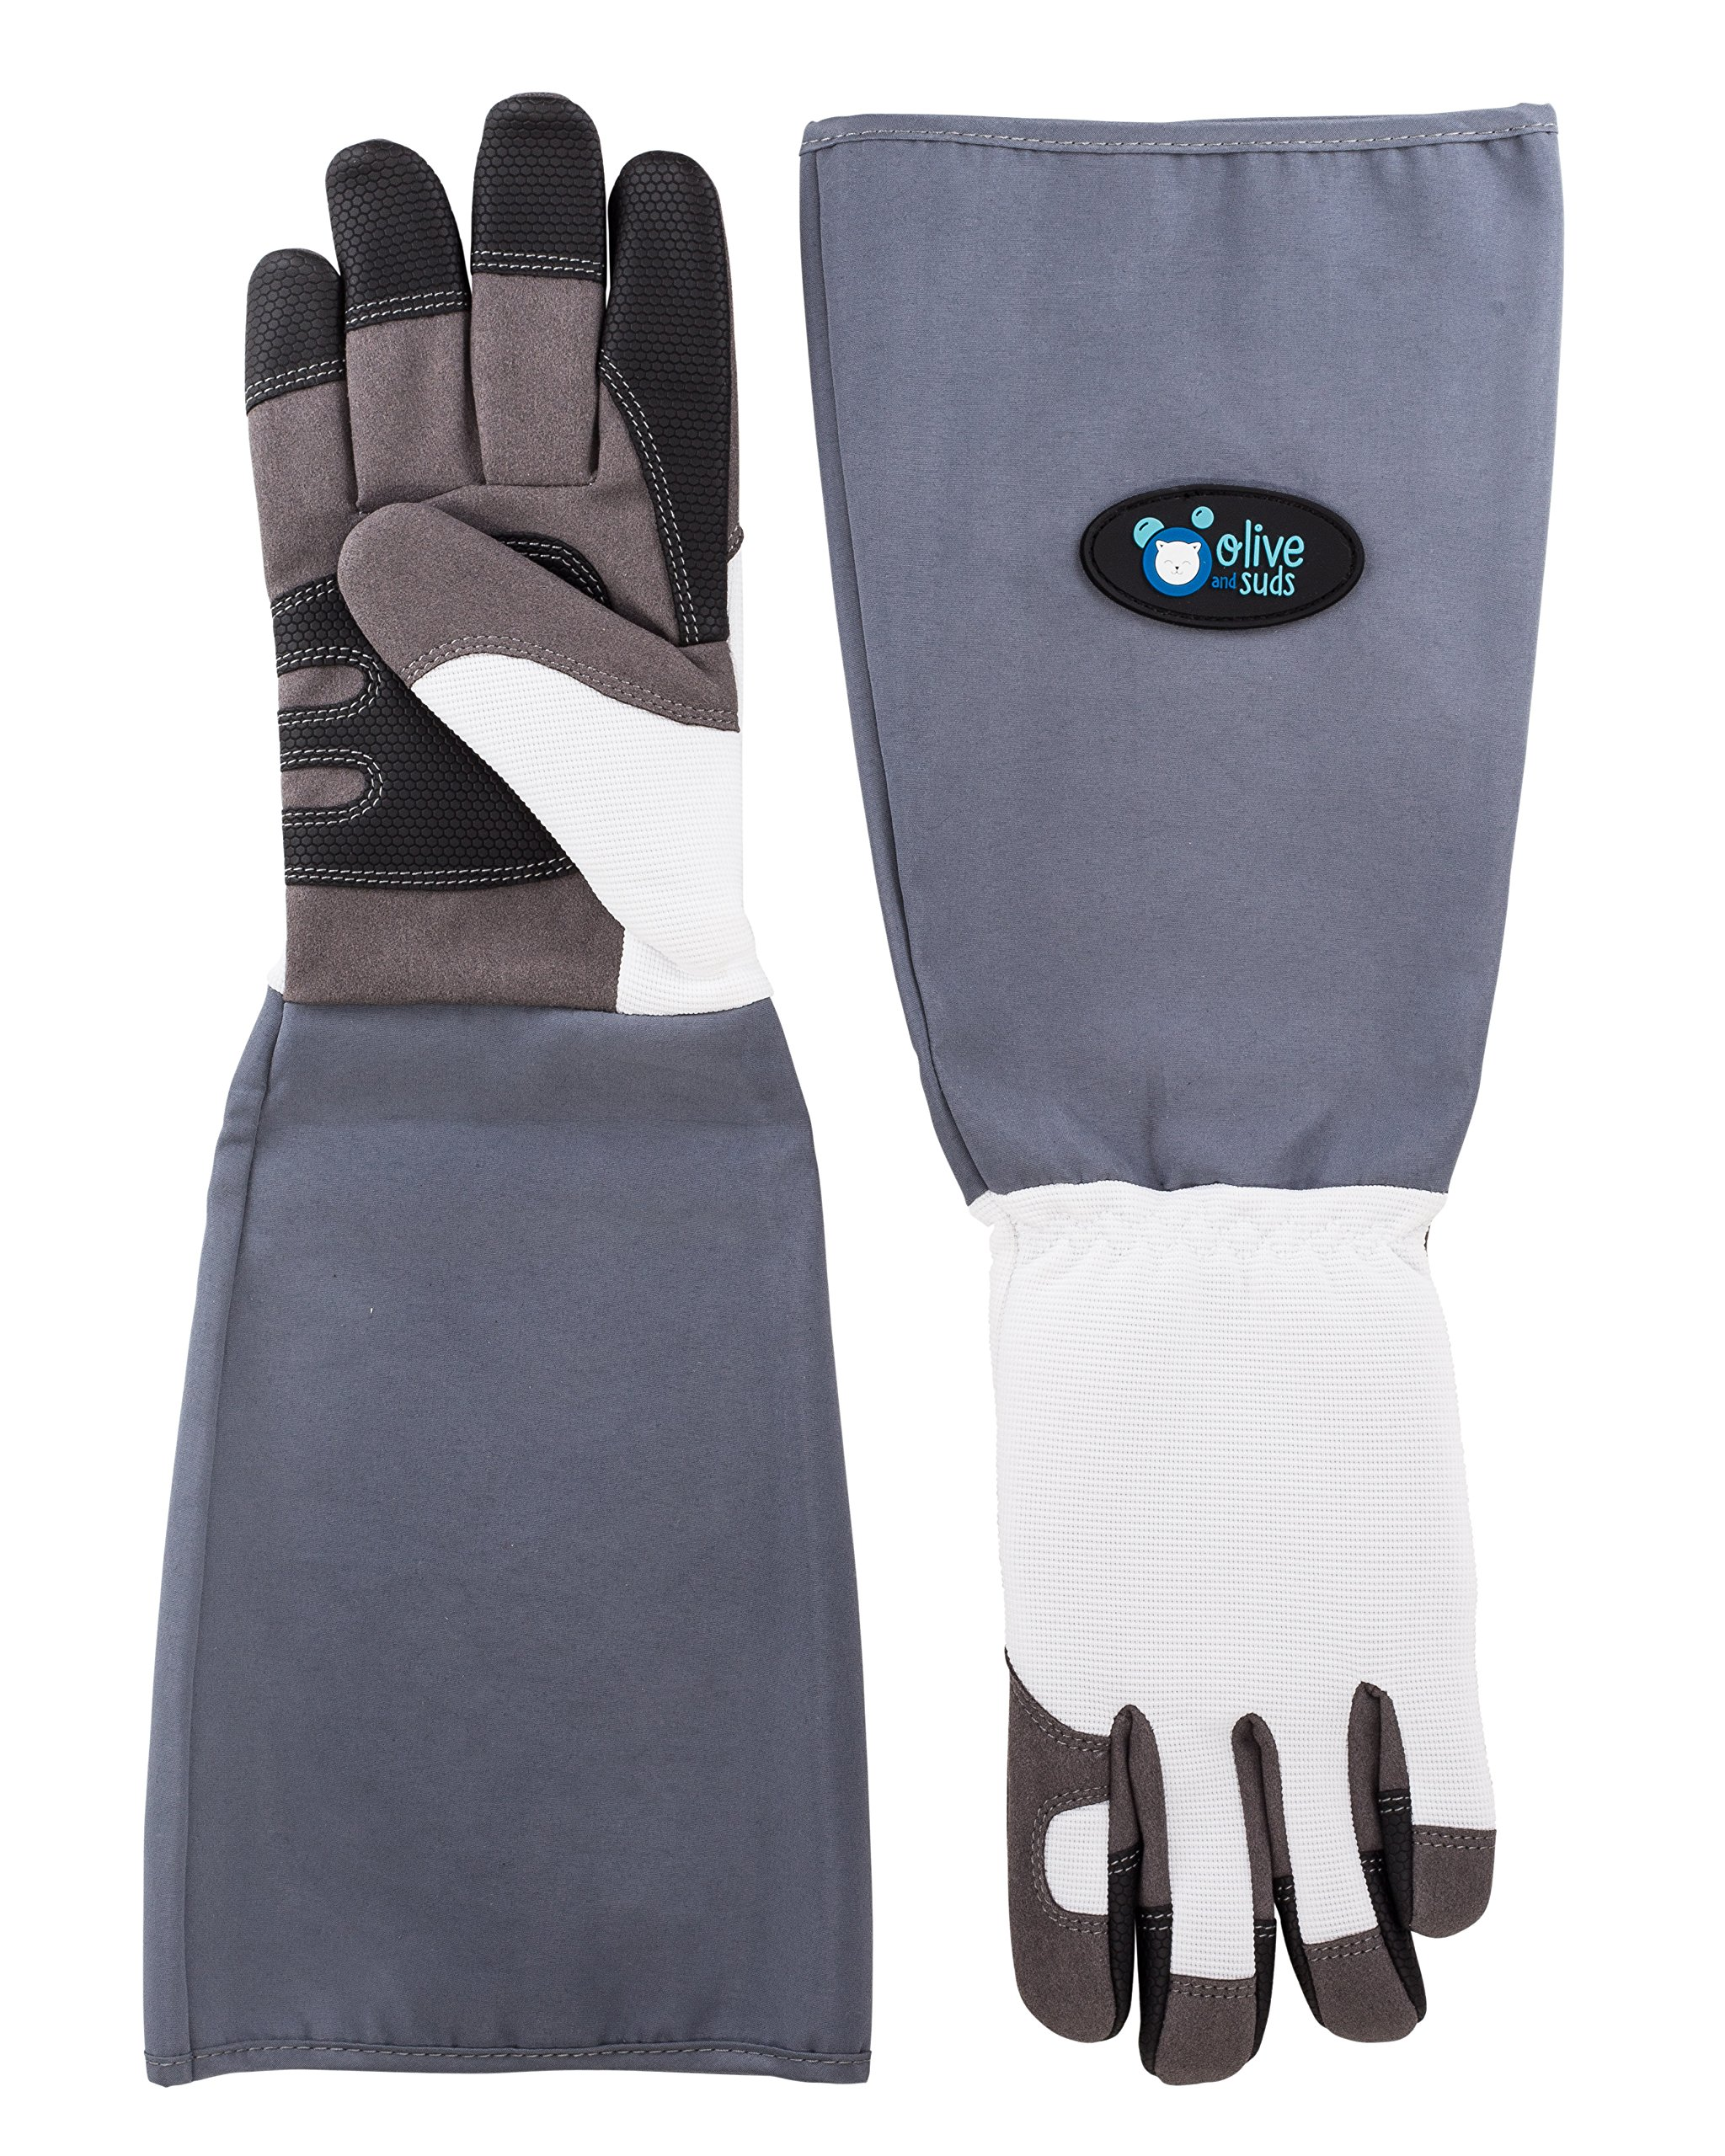 Olive & Suds: Scratch/Bite Resistant Protective Gloves For Bathing, Grooming & Handling Cats, Small Dogs, Other Small Animals